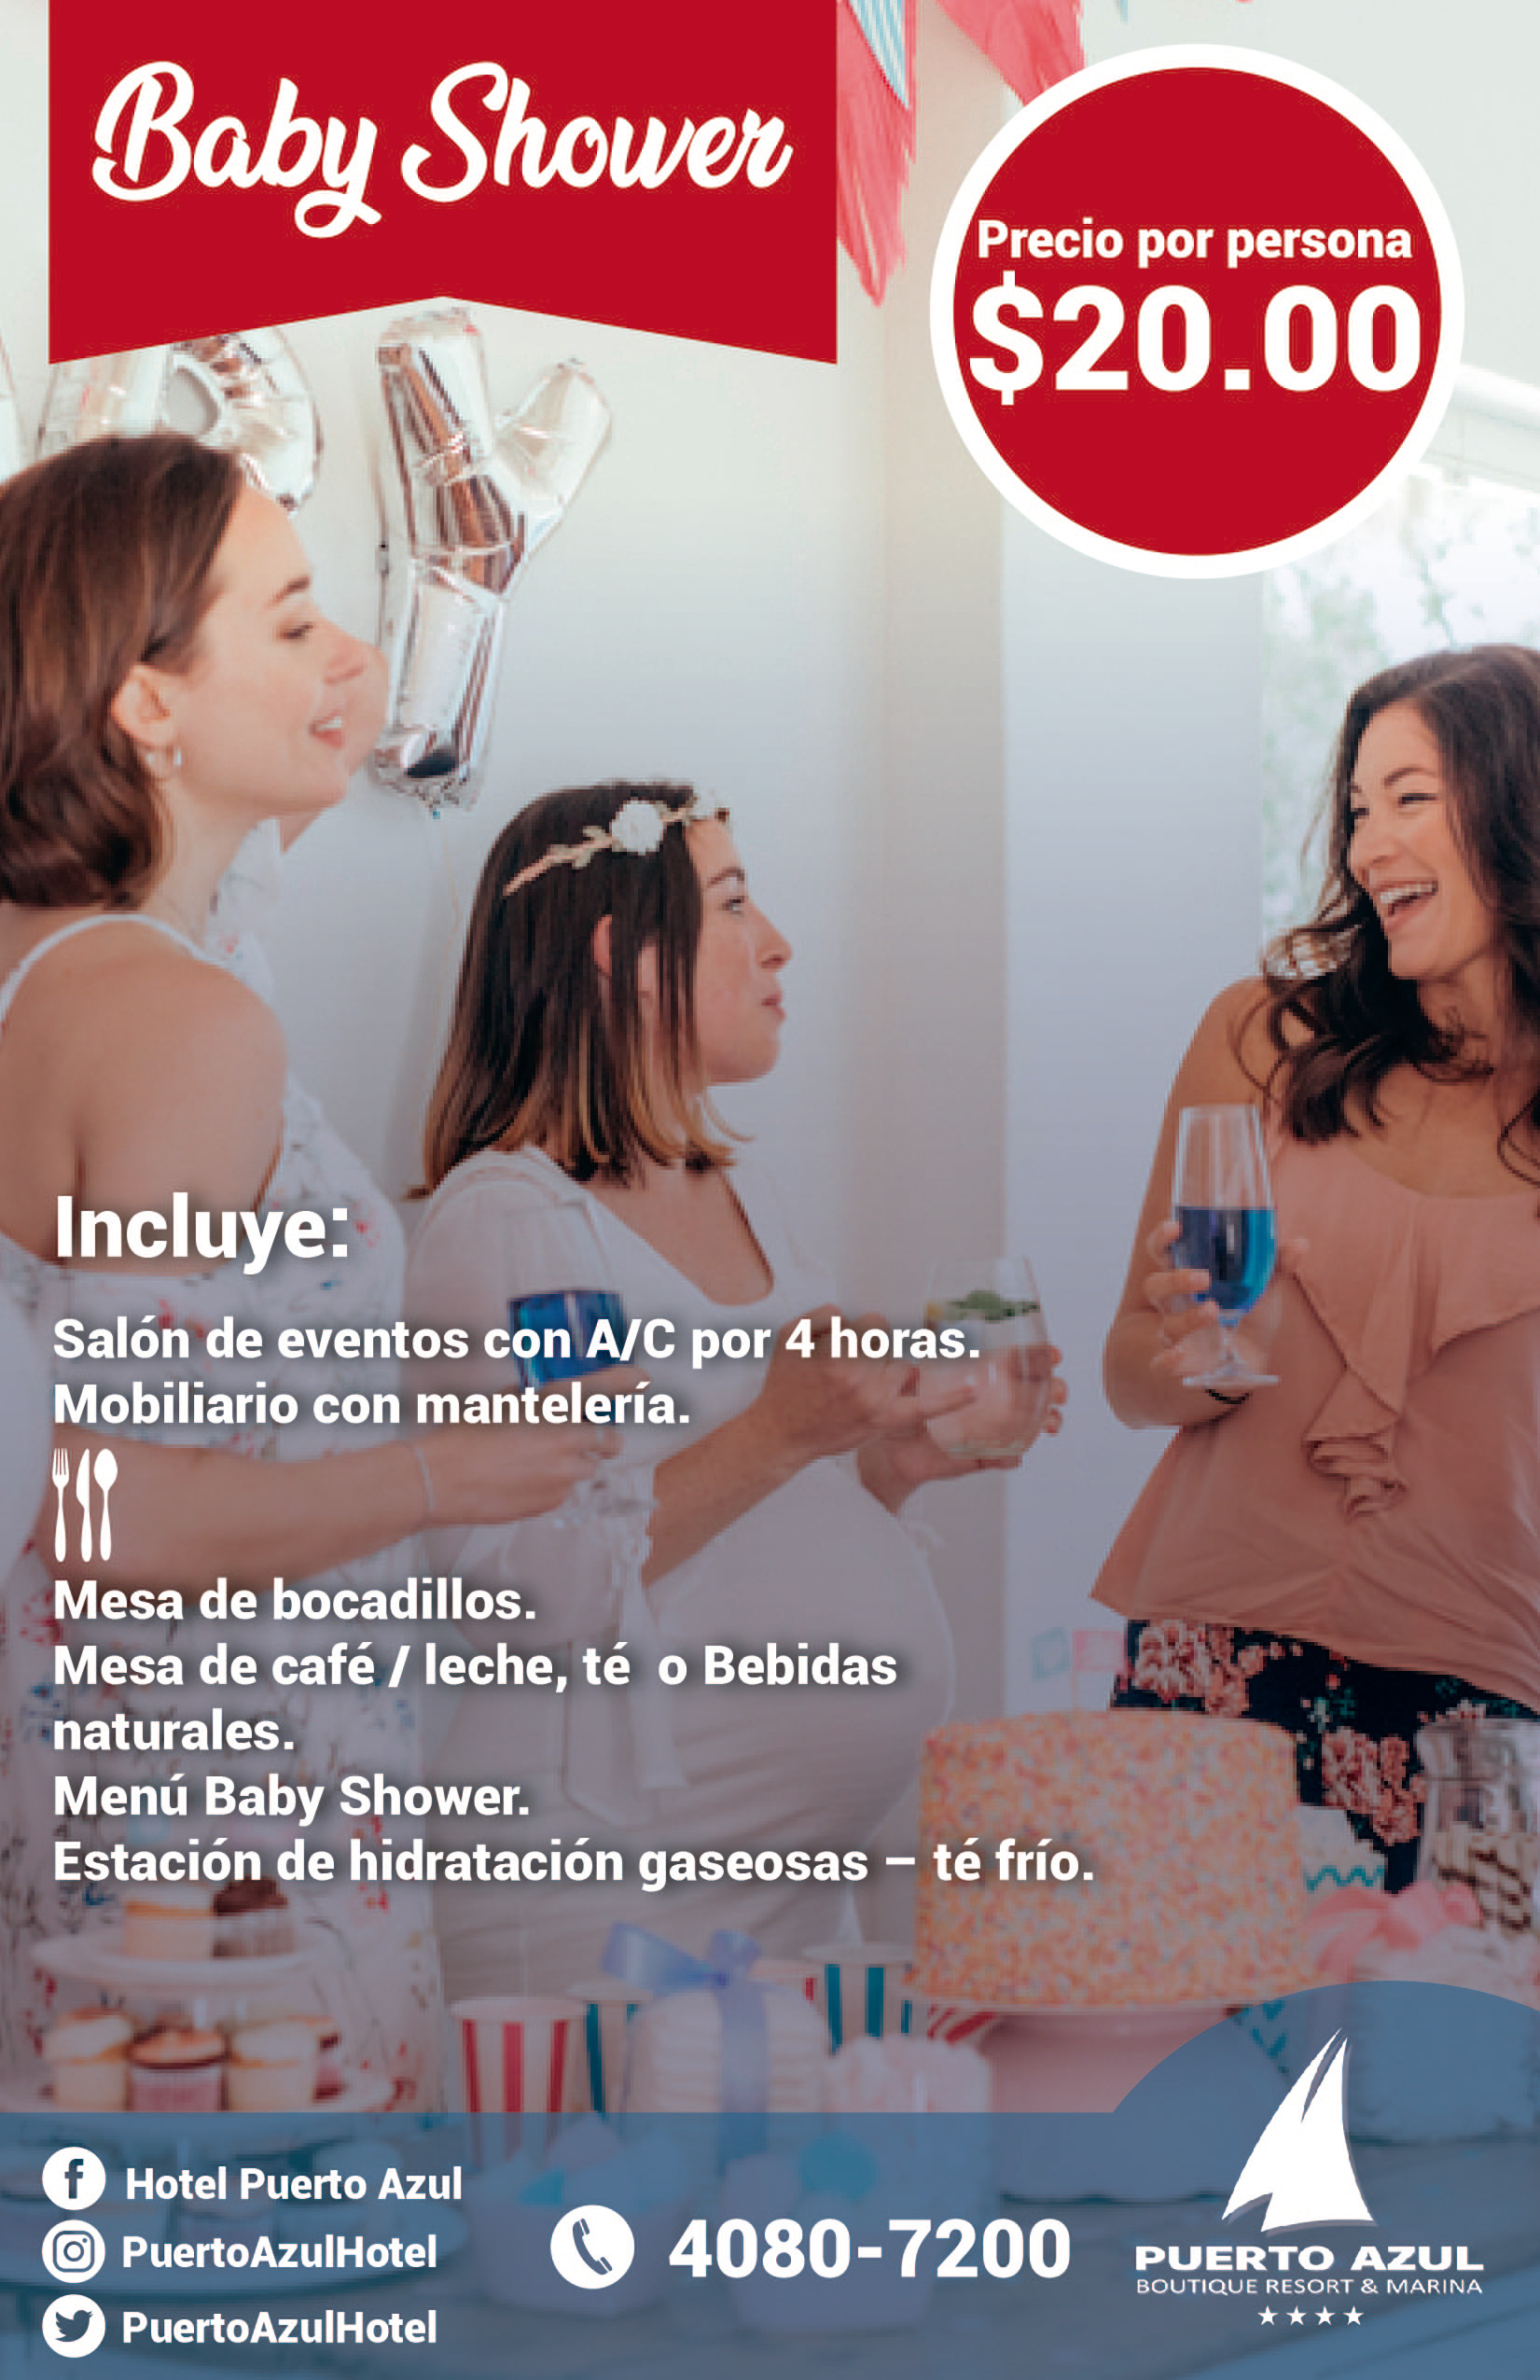 PAQUETES MEDIA CARTA JANINA_Baby Shower